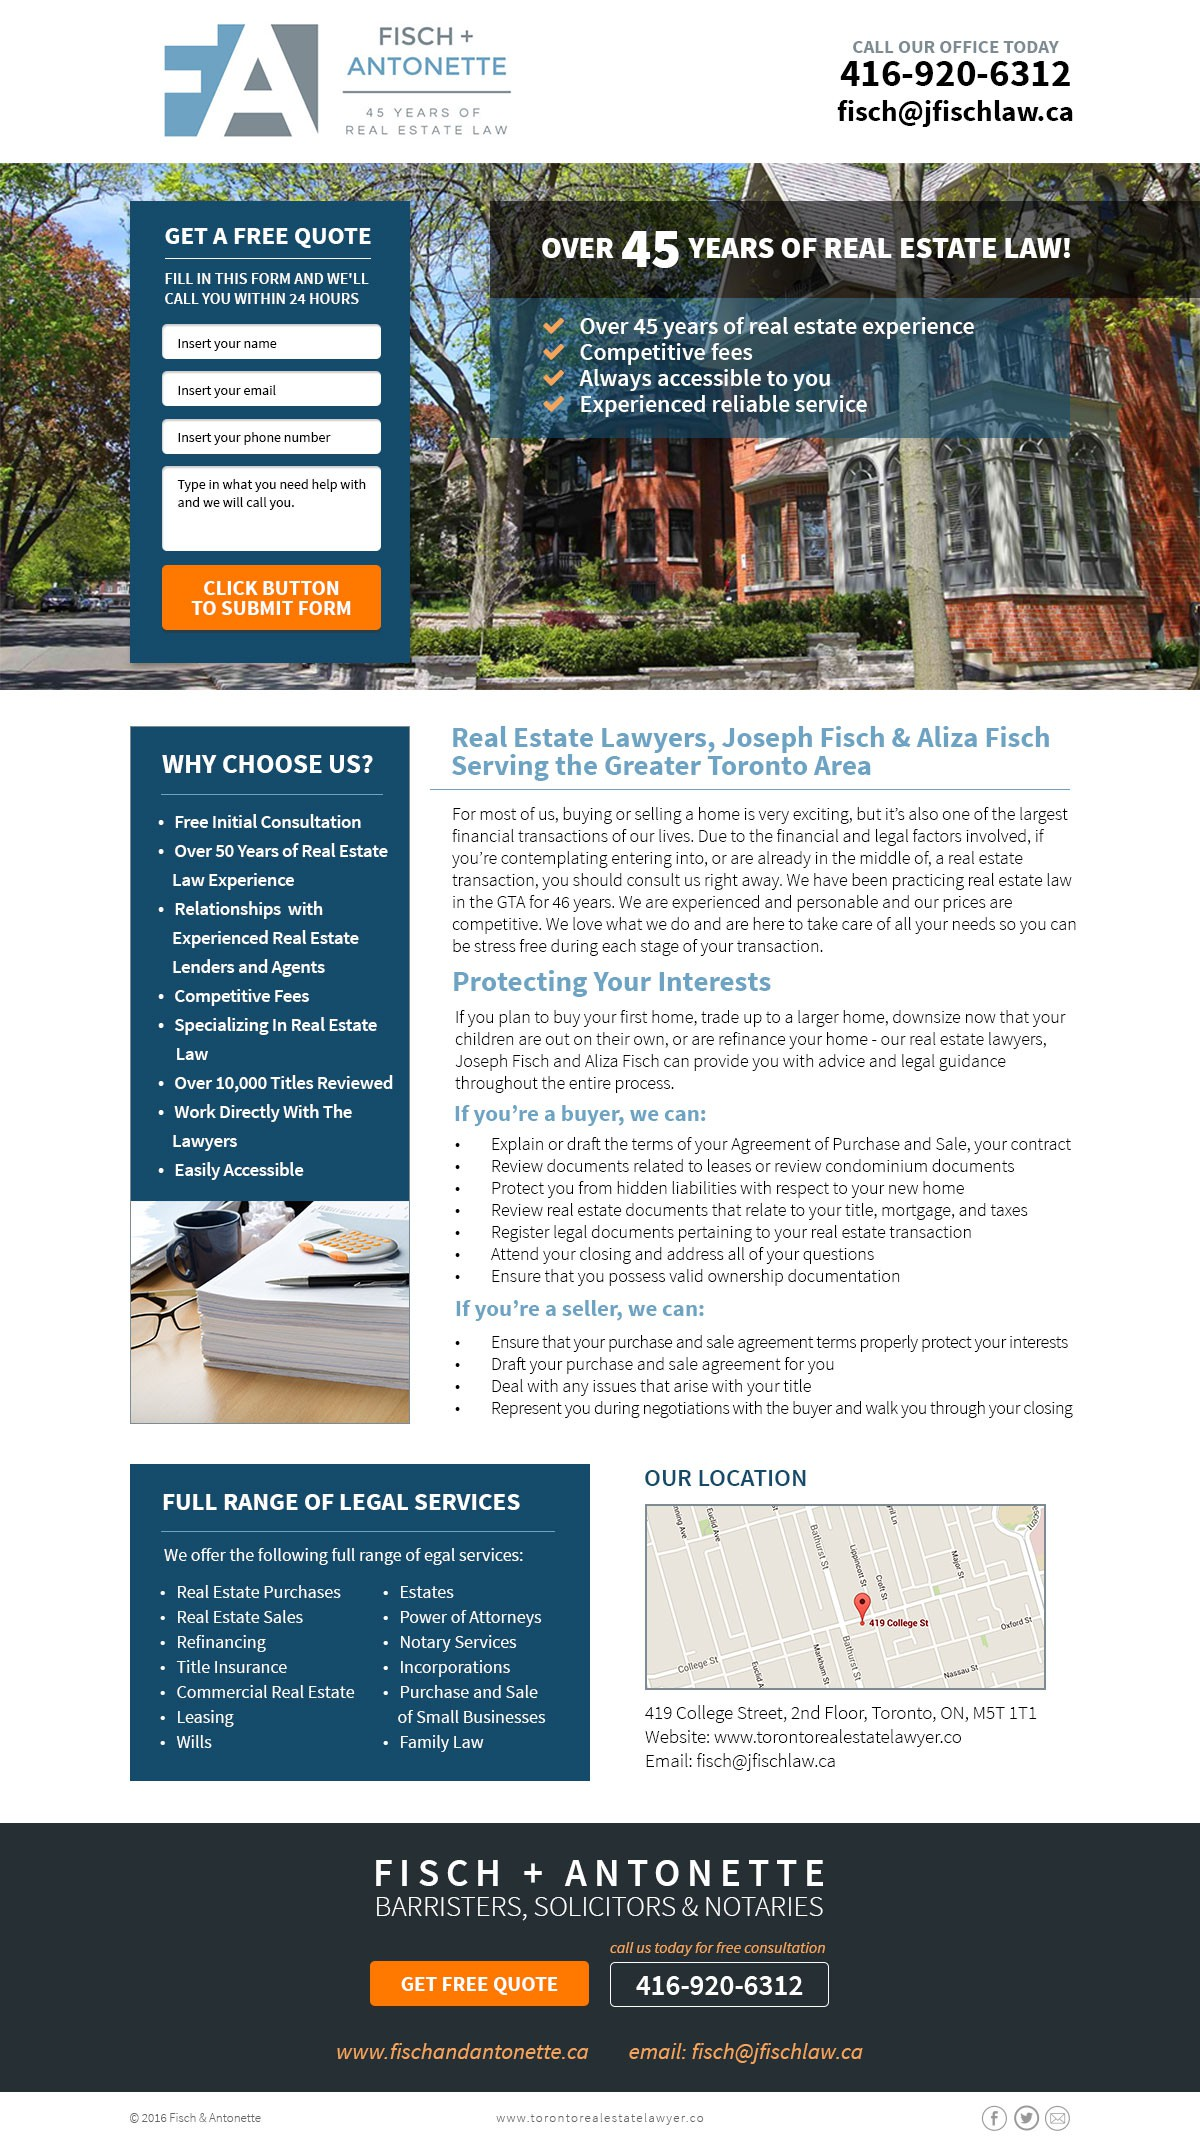 GUARANTEED: Boutique real estate firm needs awesome landing page for people looking to buy and sell homes!